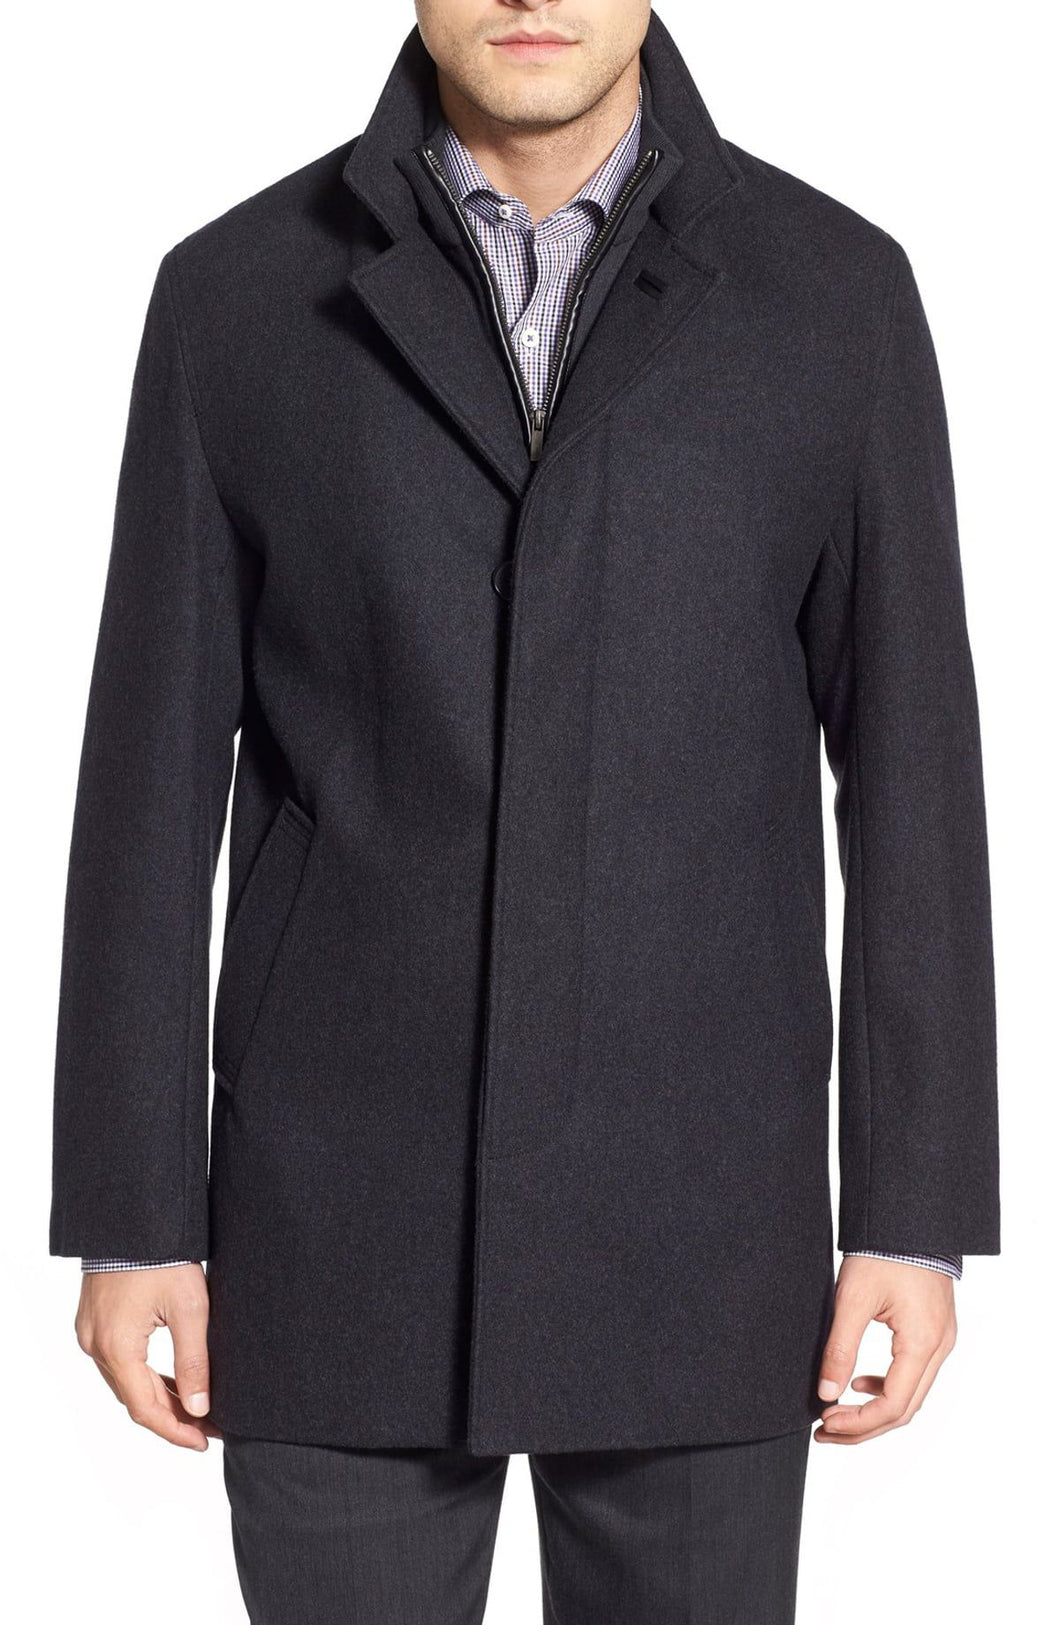 Wool Blend Topcoat with Inset Knit Bib